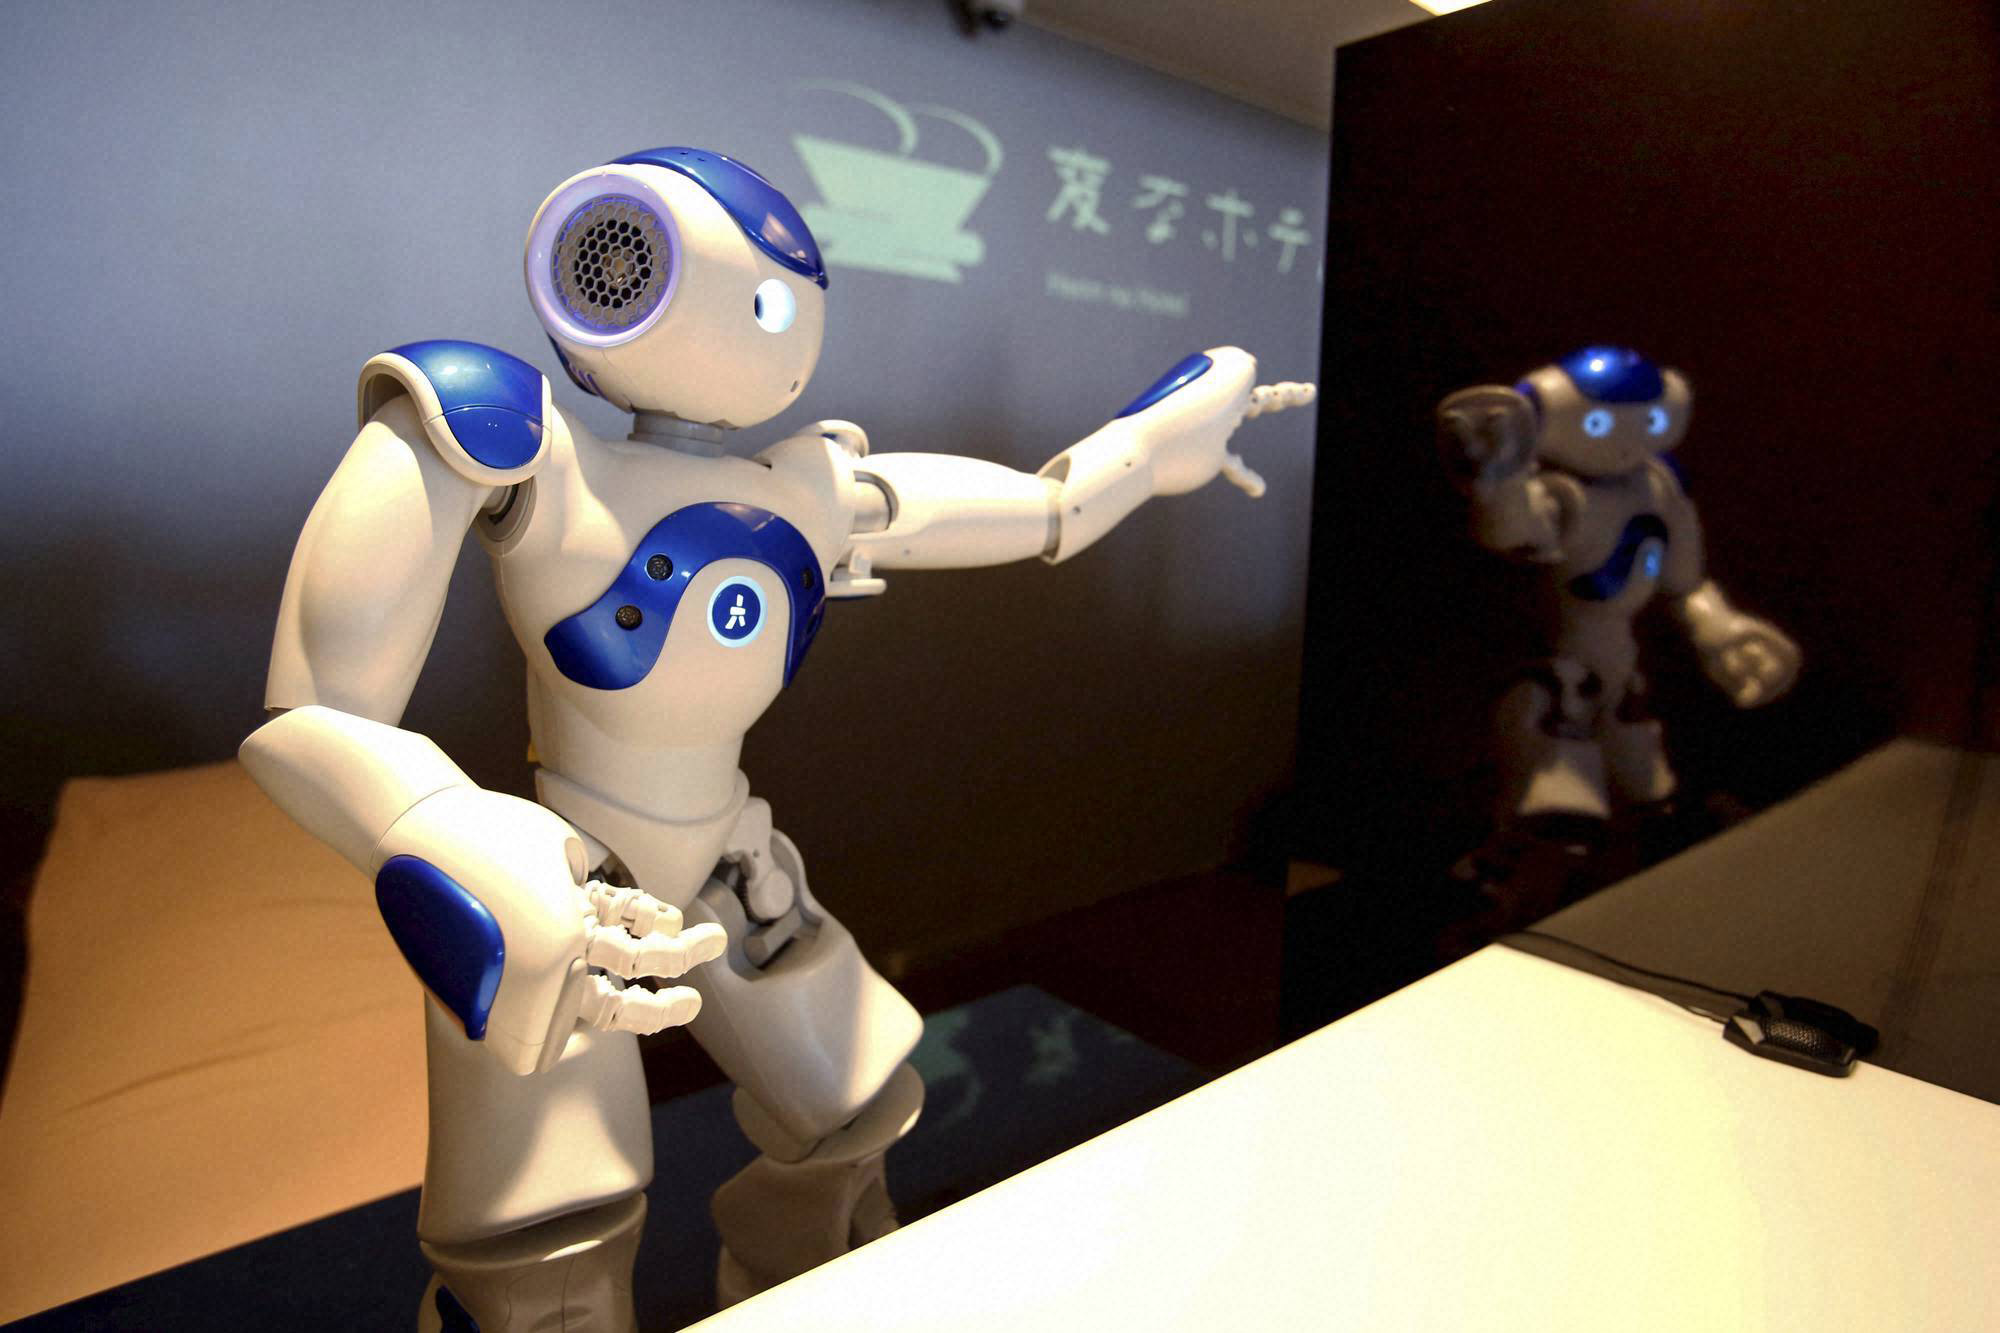 The promise of ethical machines